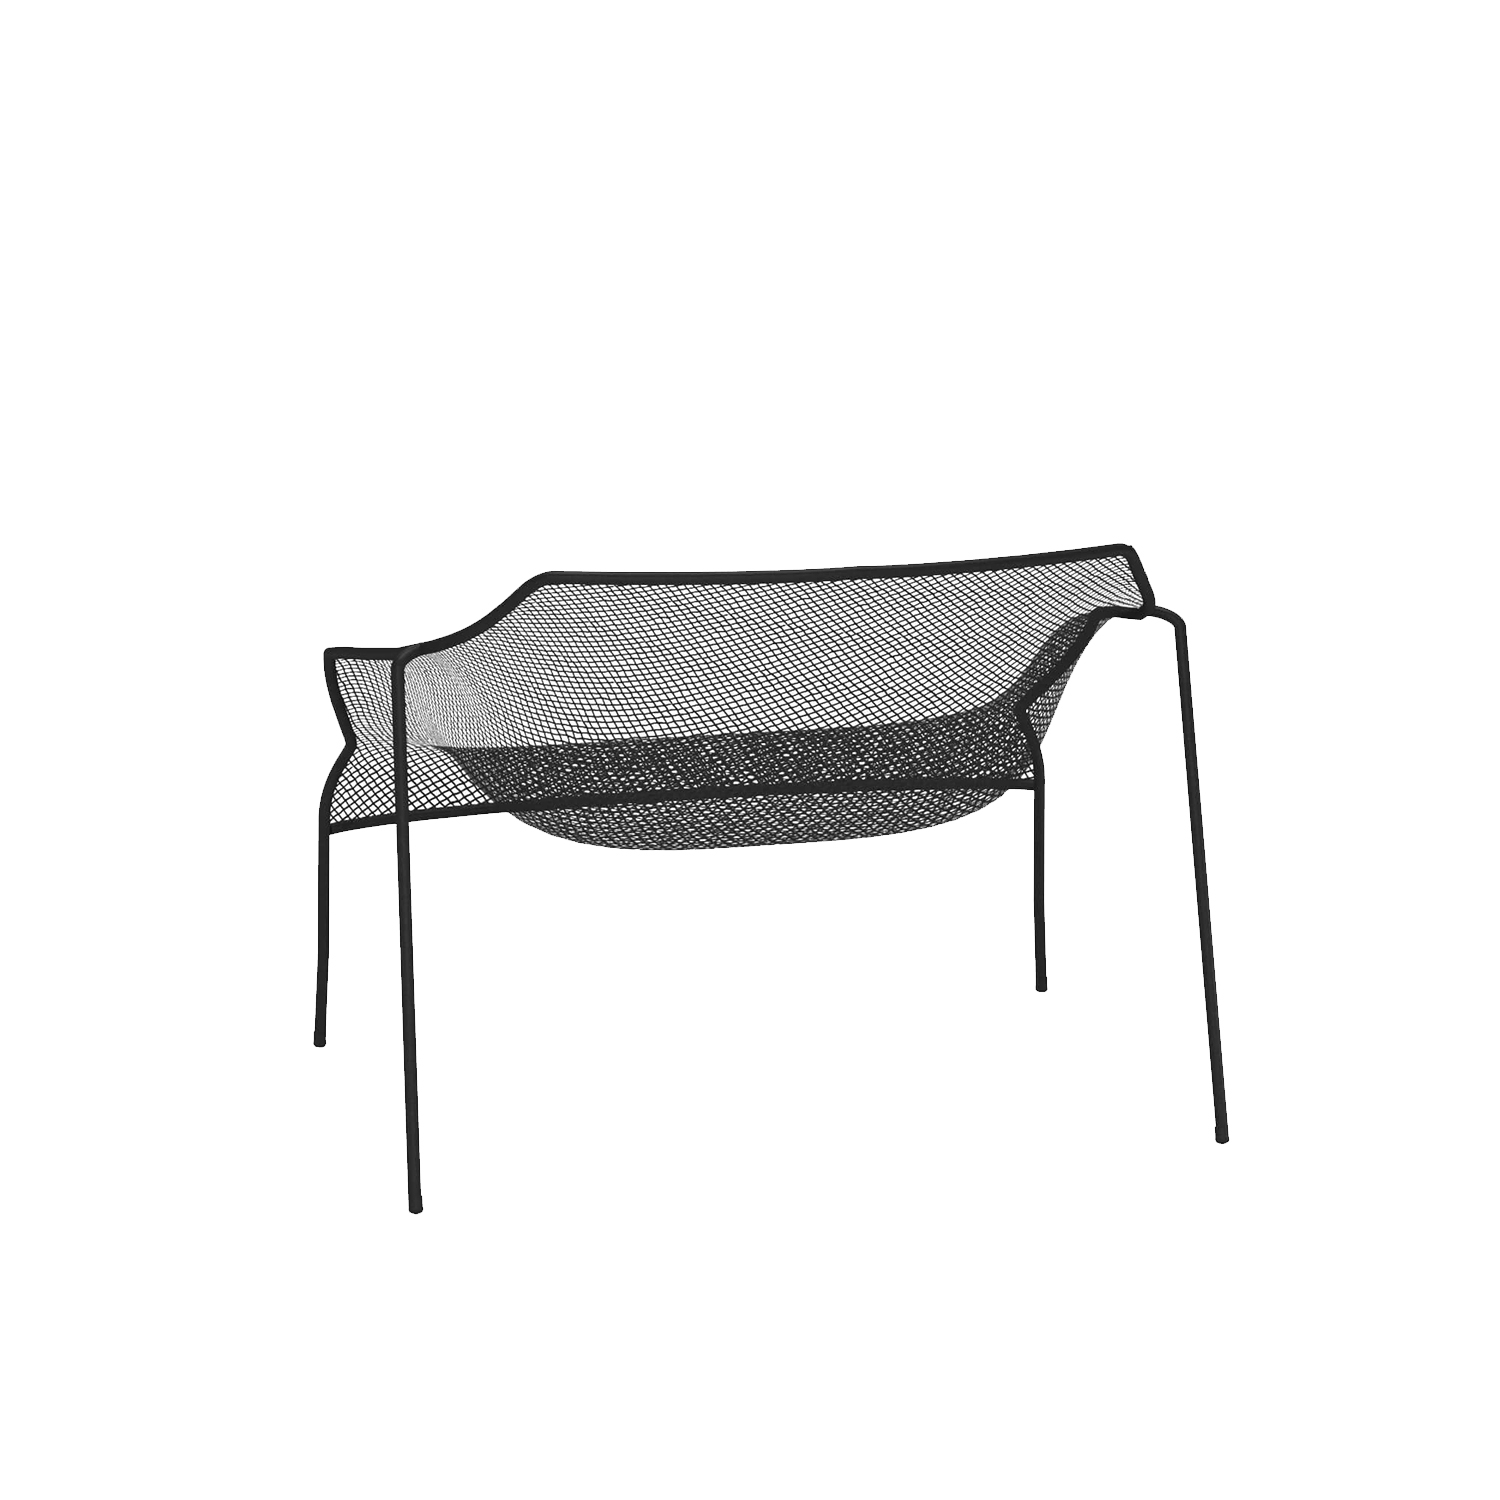 Heaven Lounge Chair - Set of 2 - <p>The idea underlying the Heaven project is that of lightness derived from forms emerging from hollow spaces bordered by interweaving lines. The thin, woven steel frame is the distinctive feature of a collection marked by well-proportioned lines and overall harmony. Steel chairs paired with transparent glass tops lighten the table surfaces, lending them an intangible quality.</p>  | Matter of Stuff